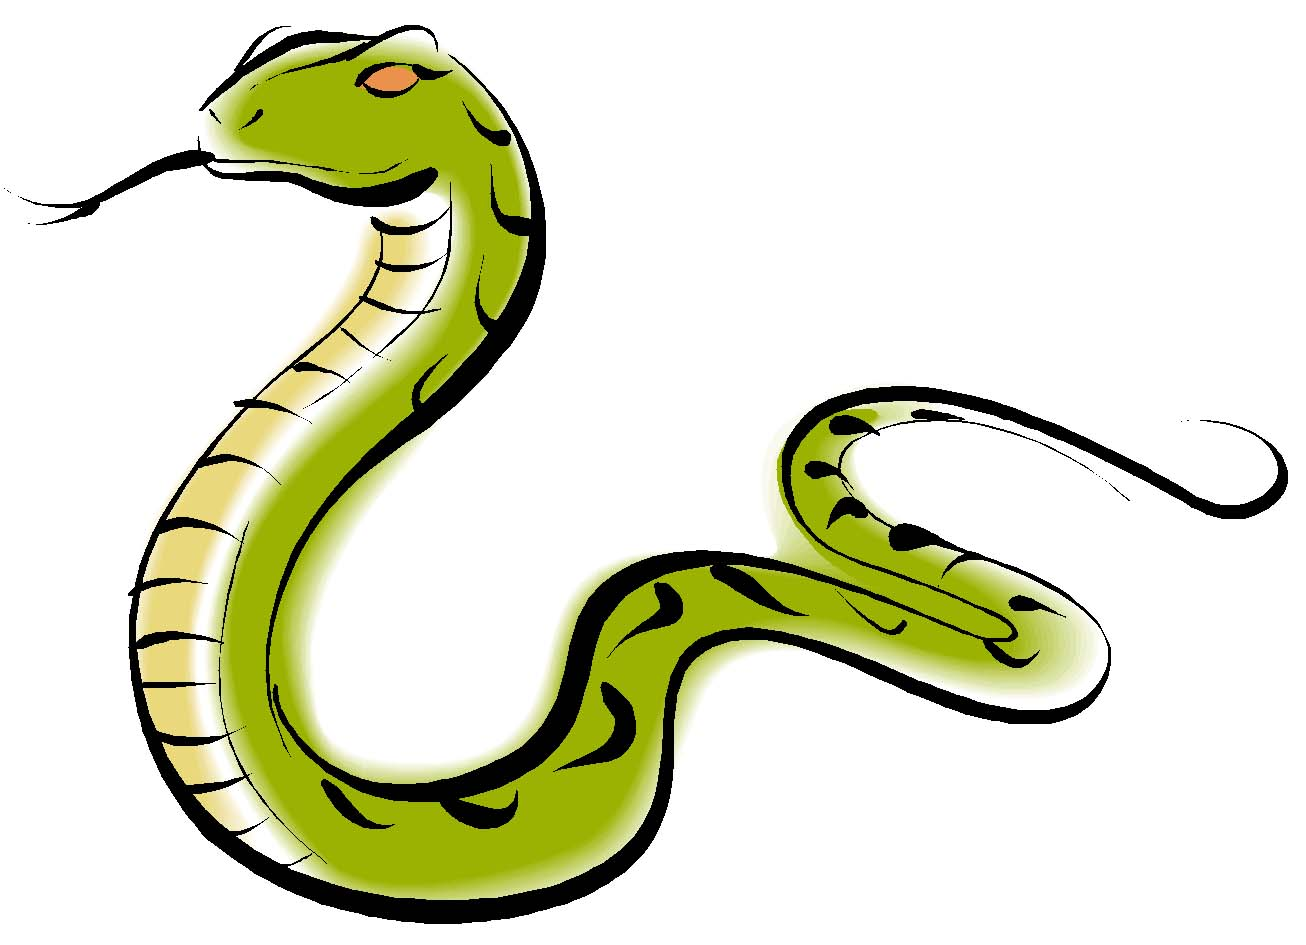 Drawn snake open mouth Clipart Clipart Panda Anaconda Free